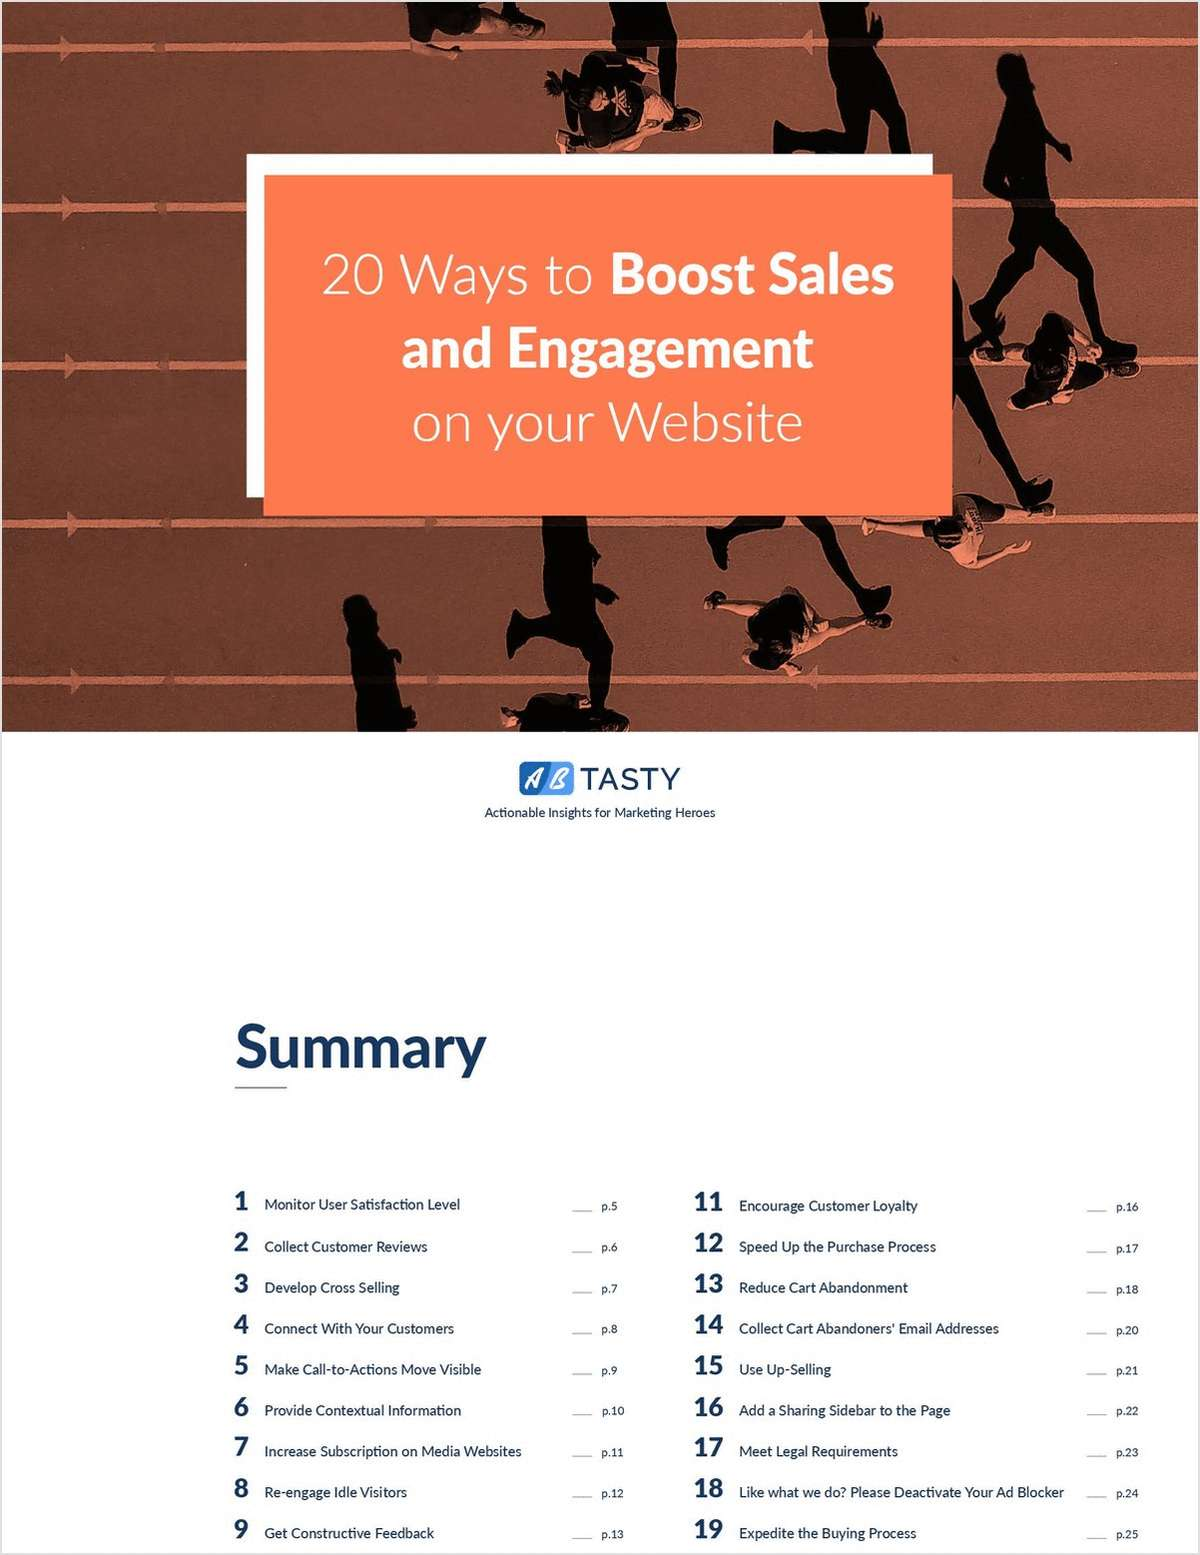 20 Ways to Boost Sales and Engagement on your Website